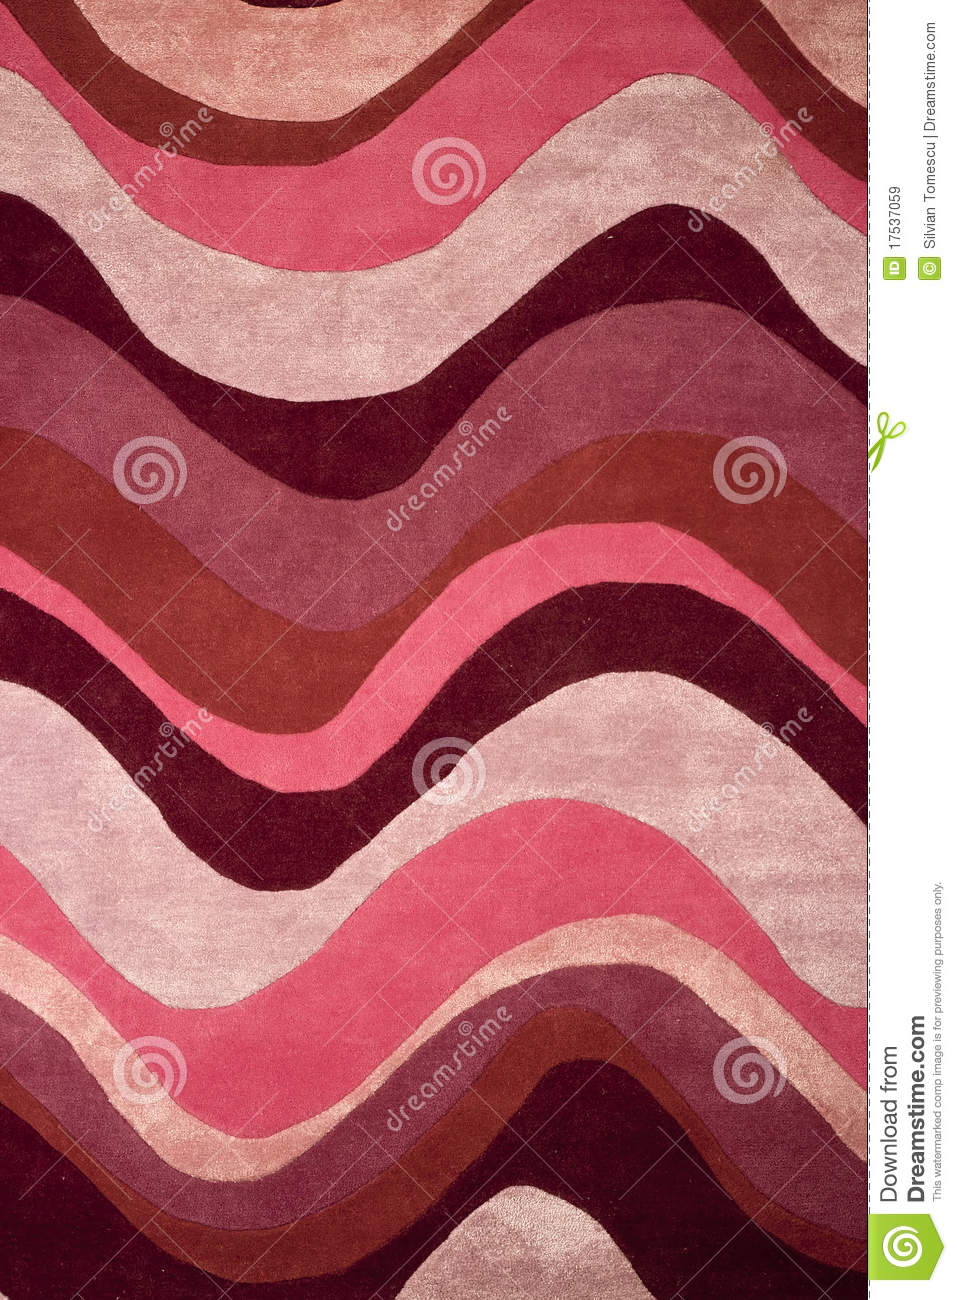 Waves Carpet Texture Royalty Free Stock Images - Image ...